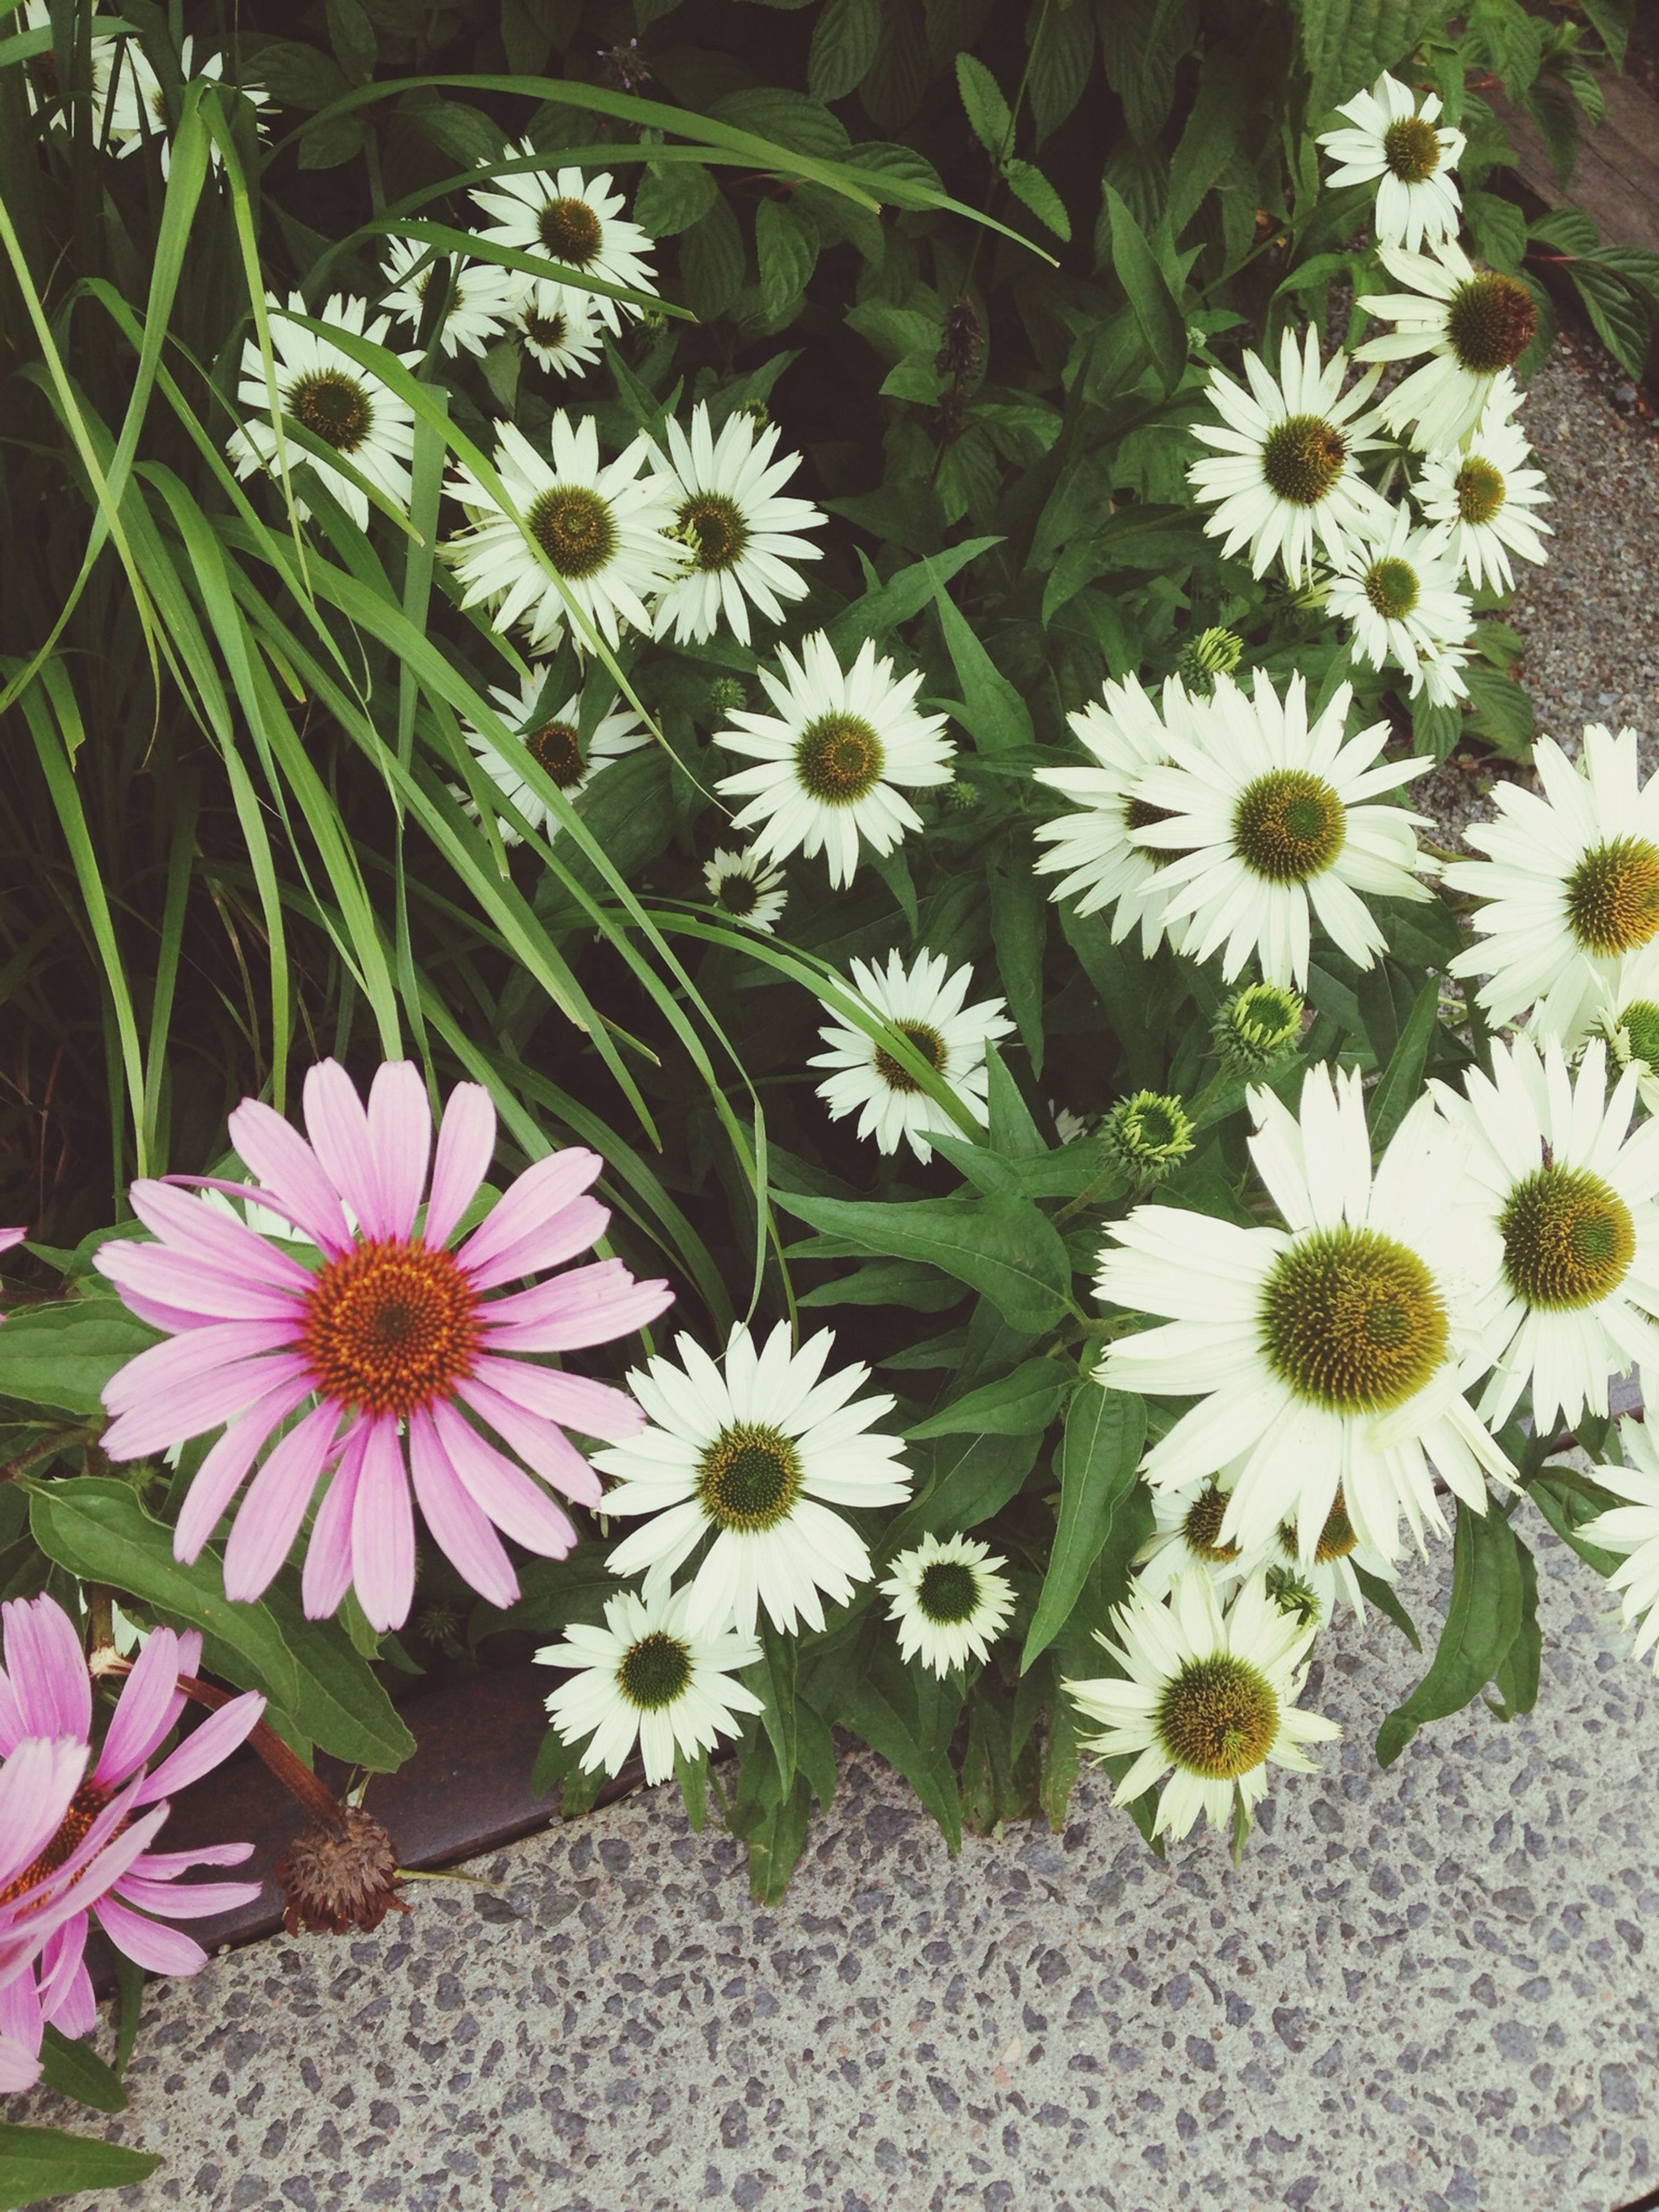 flower, petal, fragility, freshness, flower head, growth, high angle view, daisy, white color, beauty in nature, blooming, nature, plant, in bloom, pollen, blossom, no people, day, close-up, botany